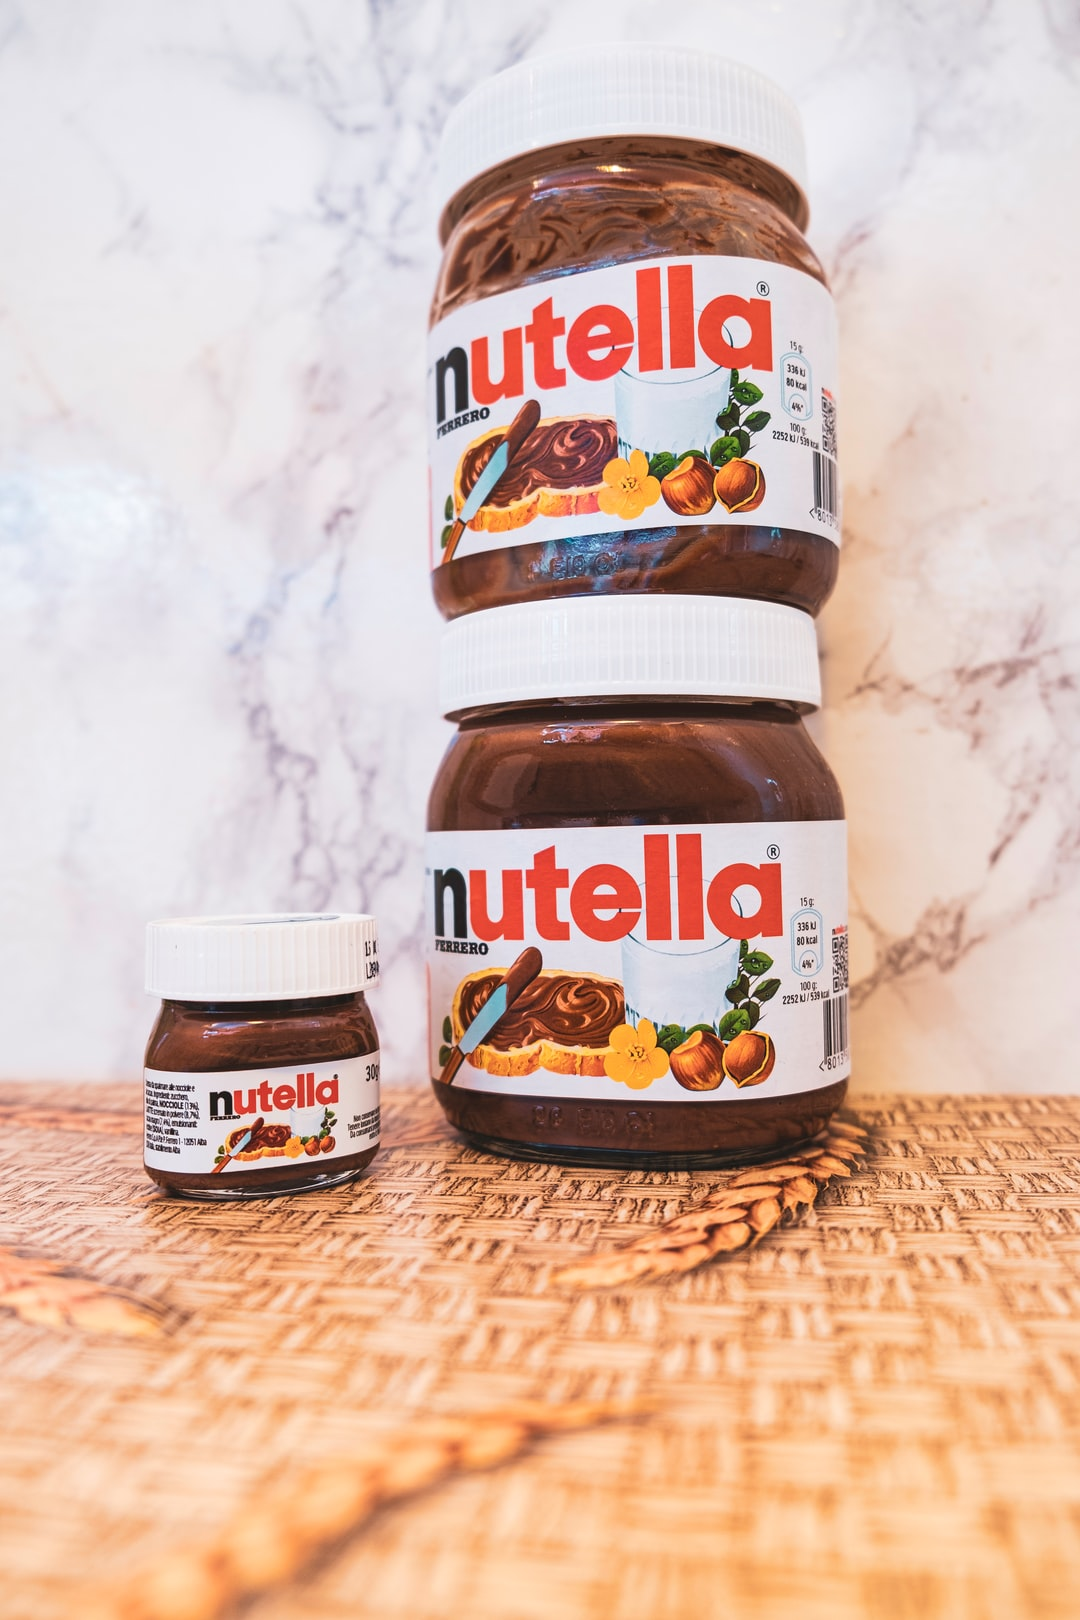 You don't leave 2 jars of Nutella together, on the table...because if you do...well, the photo showcases the reason...🤣🤷♂️ #justkidding